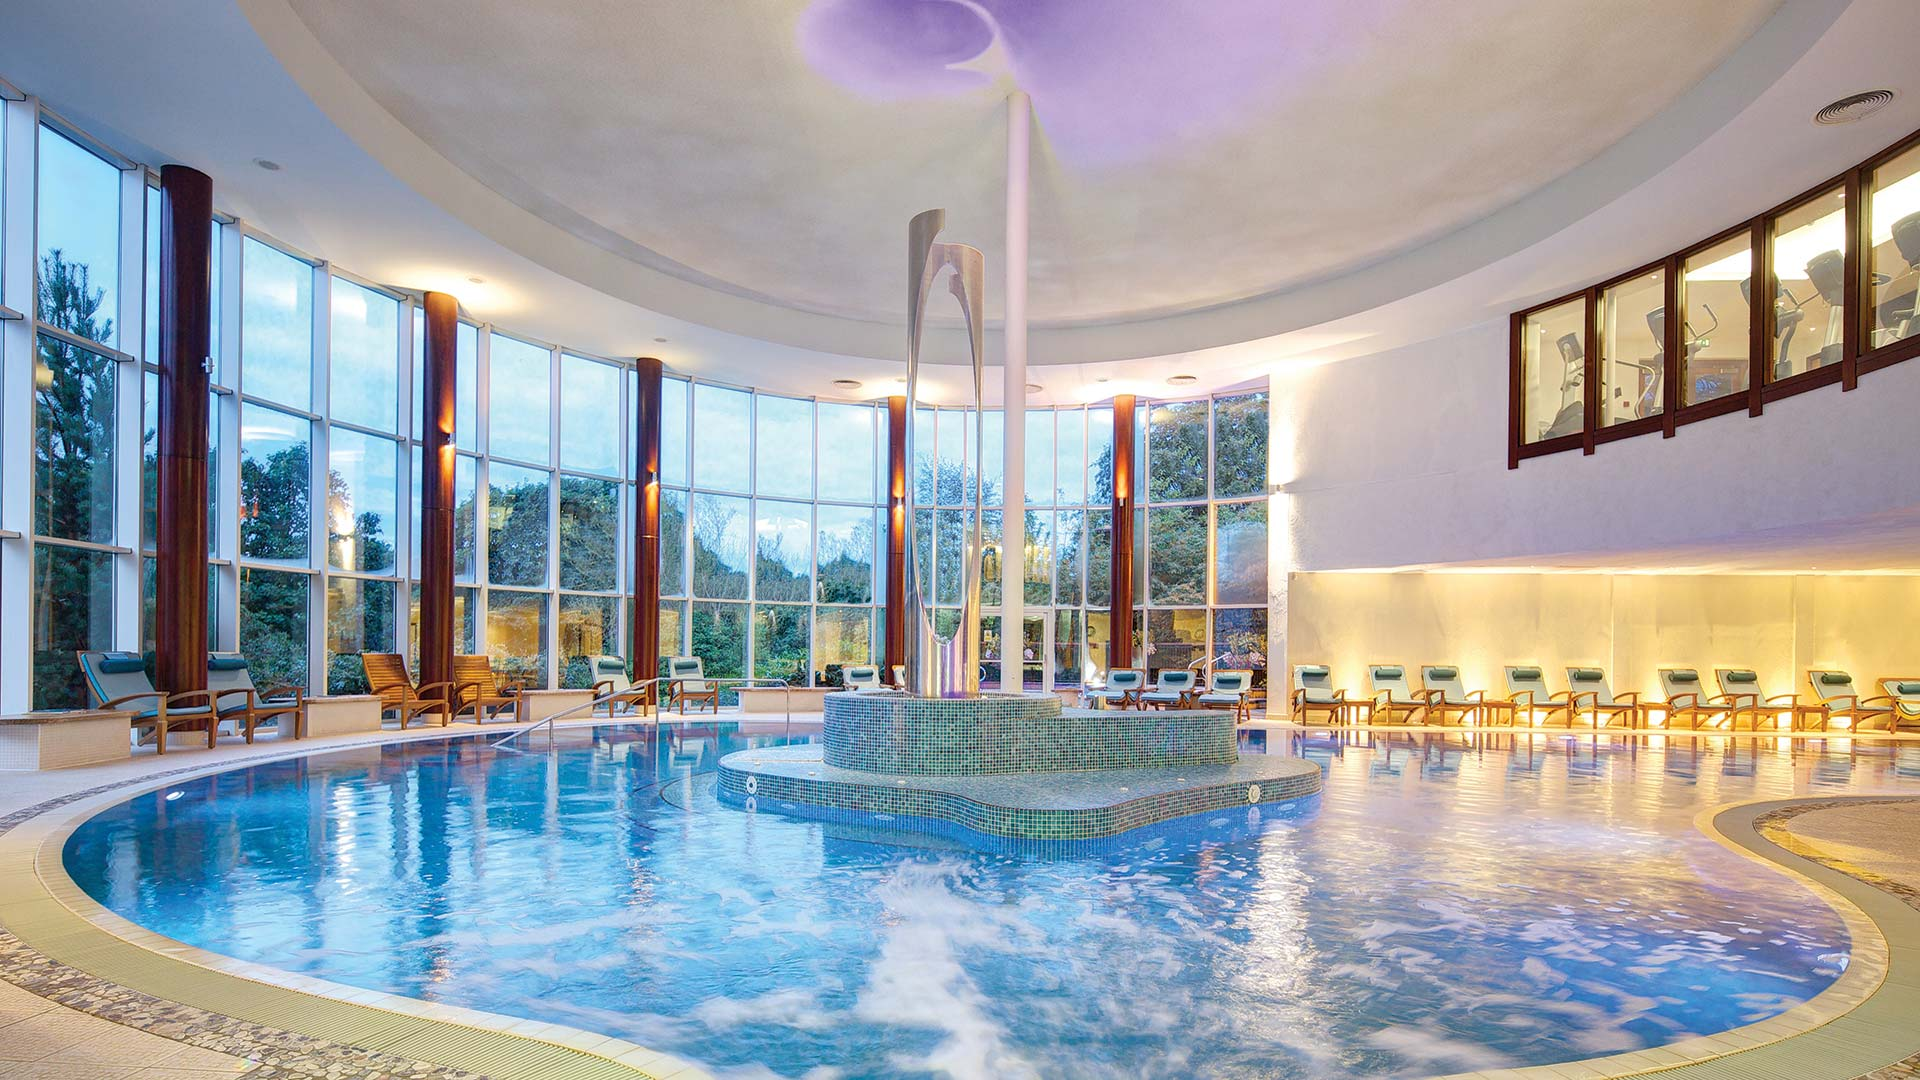 Seaham Hall Hotel Amp Spa Durham Luxury Hotels Pride Of